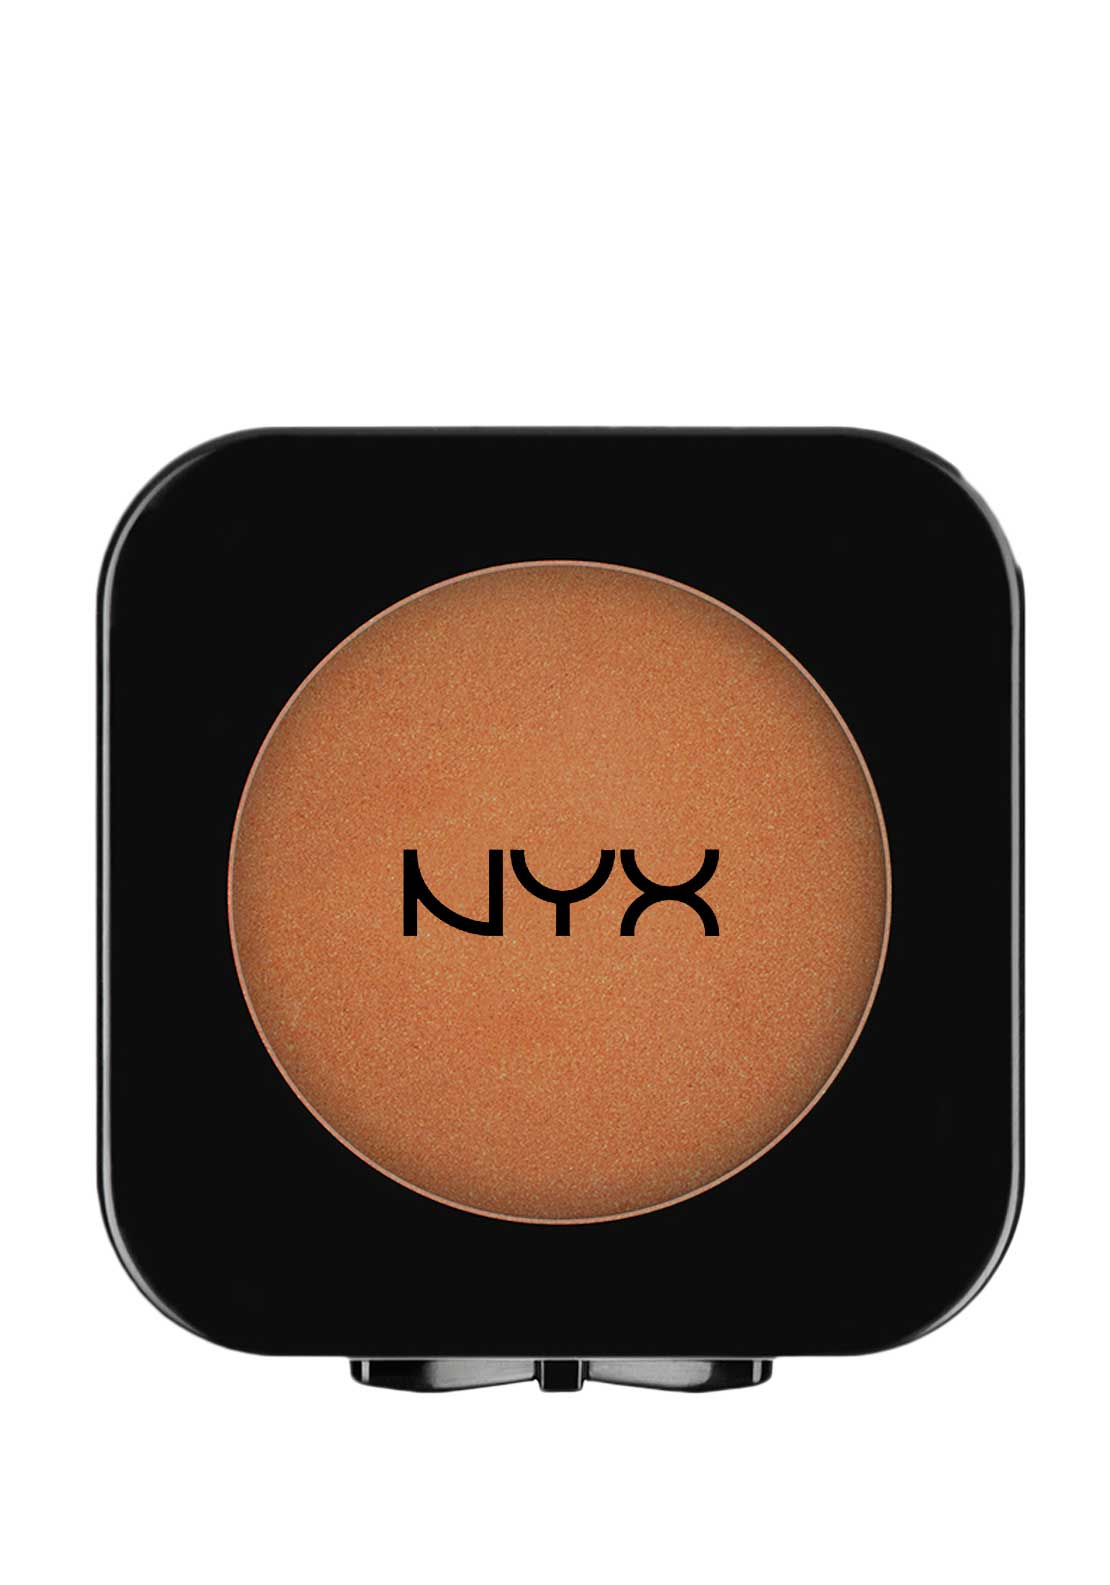 NYX Make Up HD Blusher, Nude 'Tude, 02